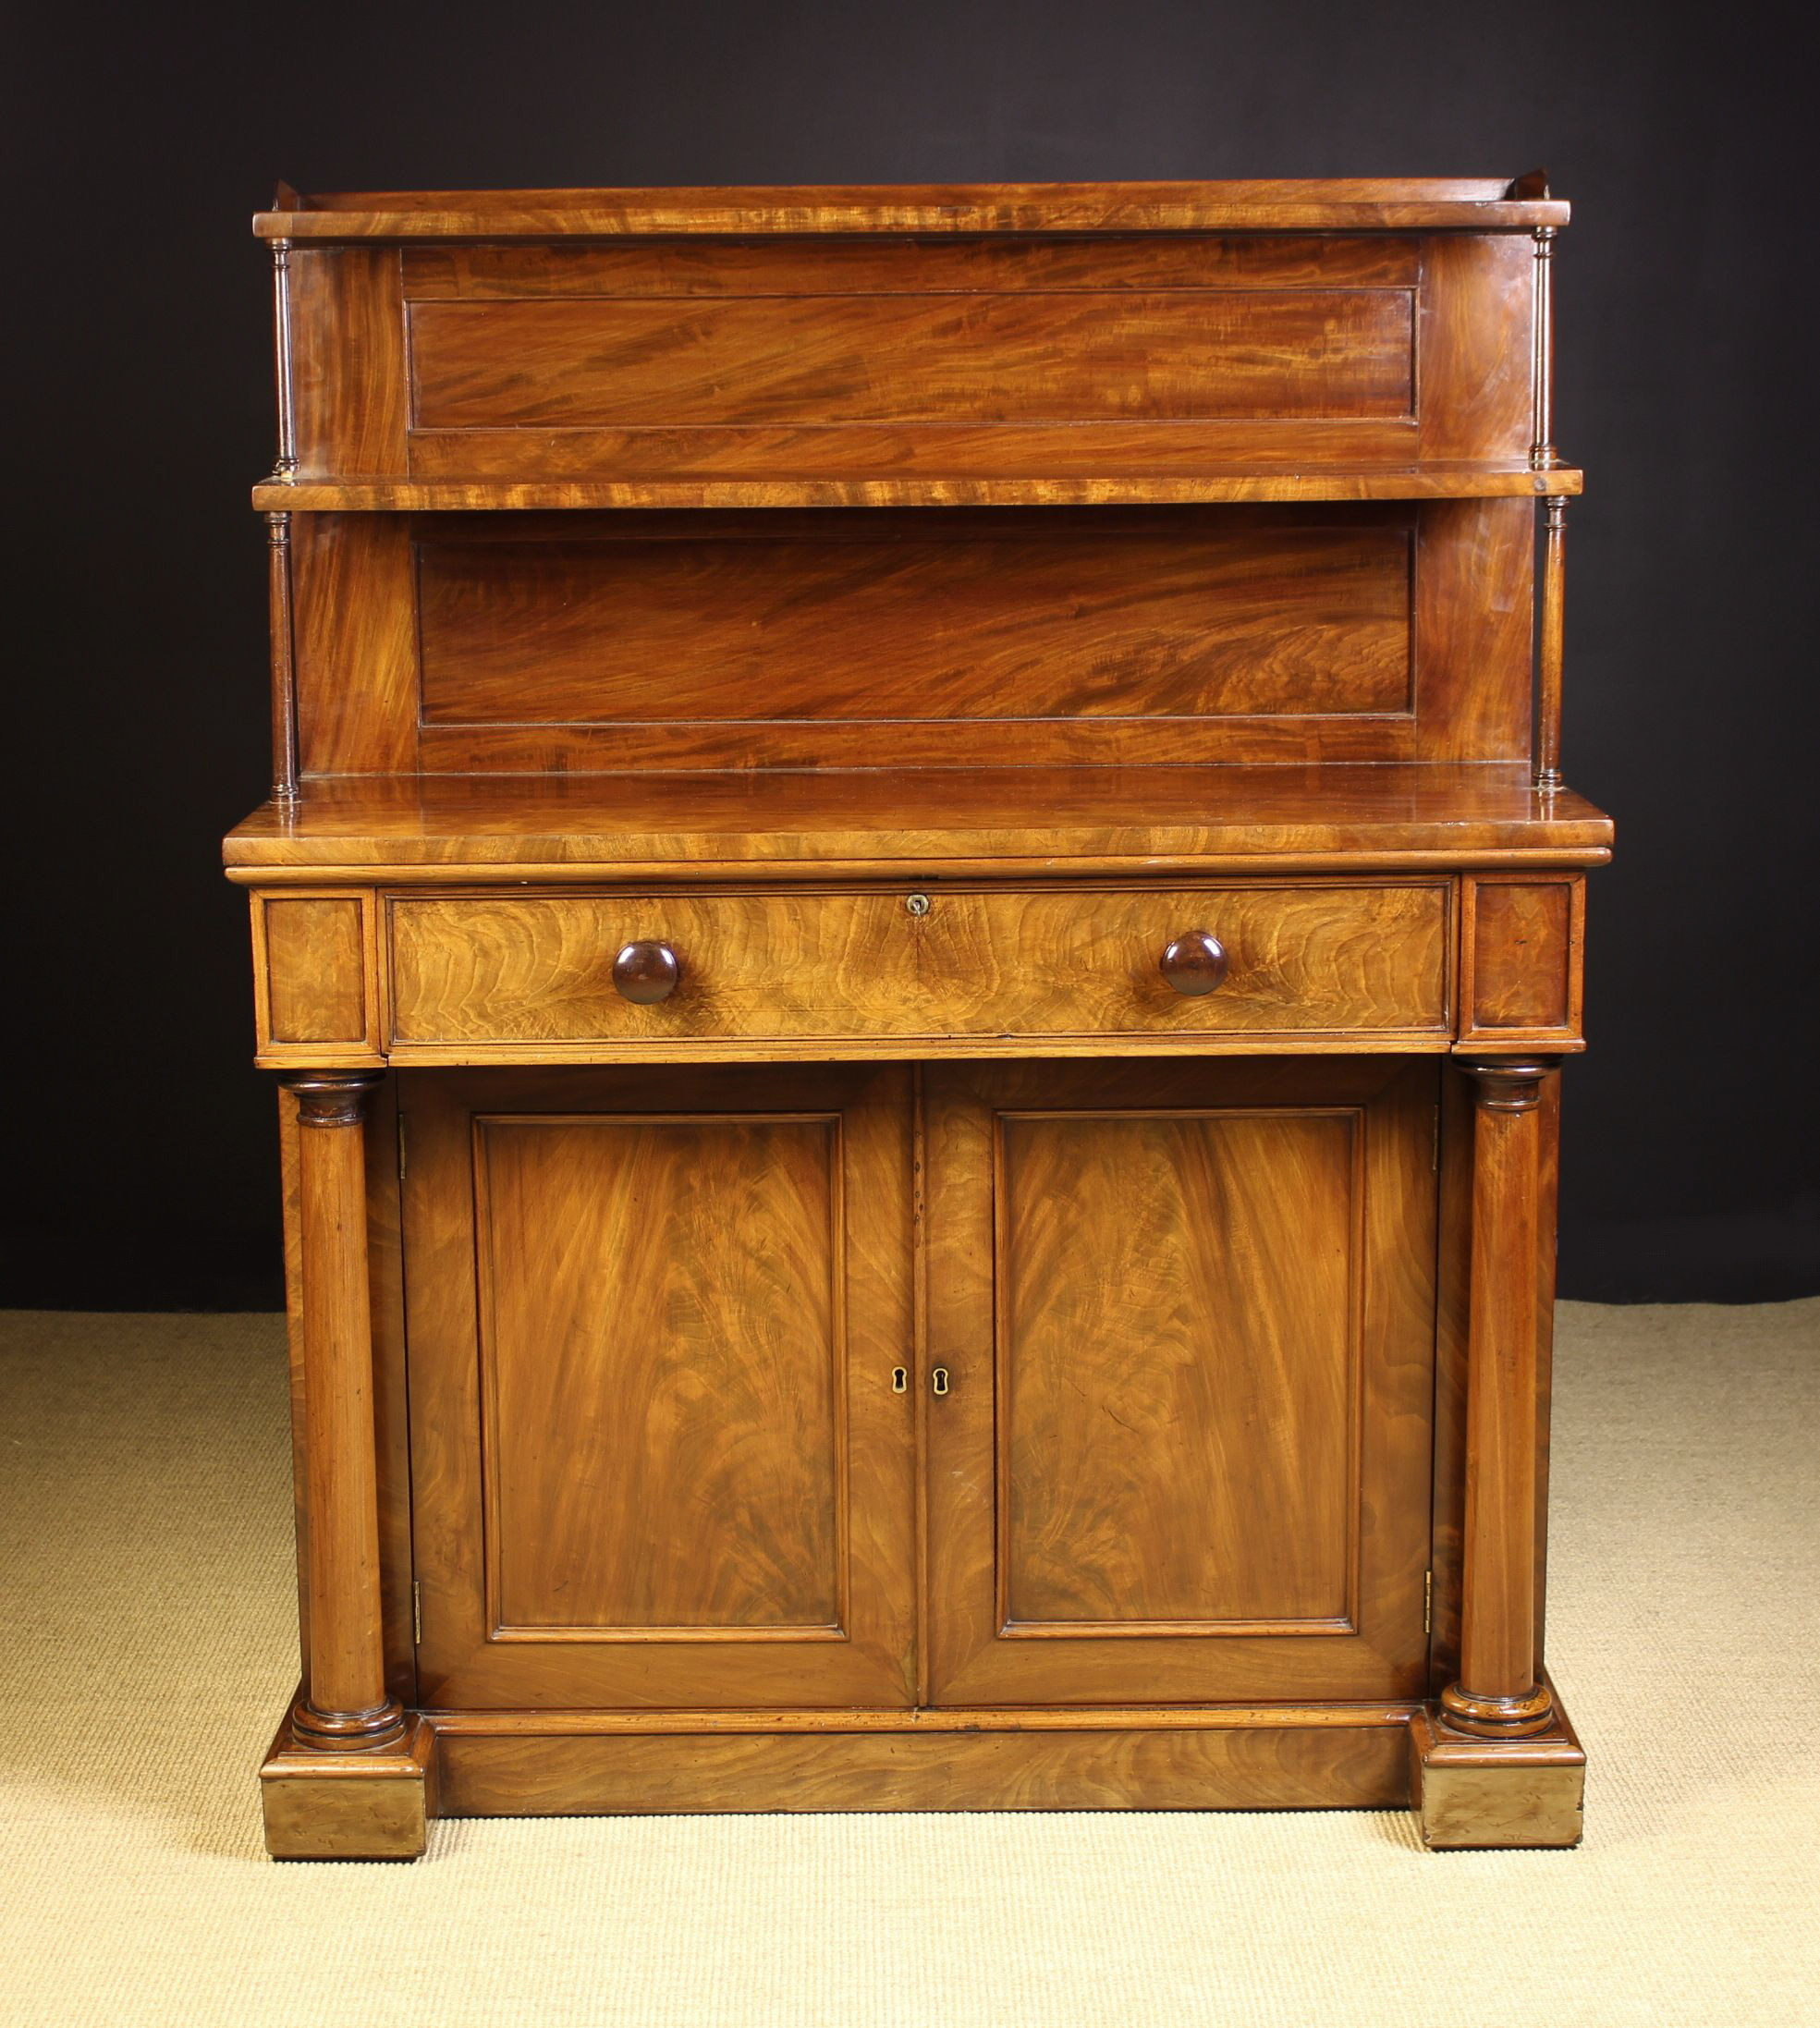 A Fine Mid 19th Century Flame Mahogany Chiffonier with Secrètaire. - Image 2 of 2